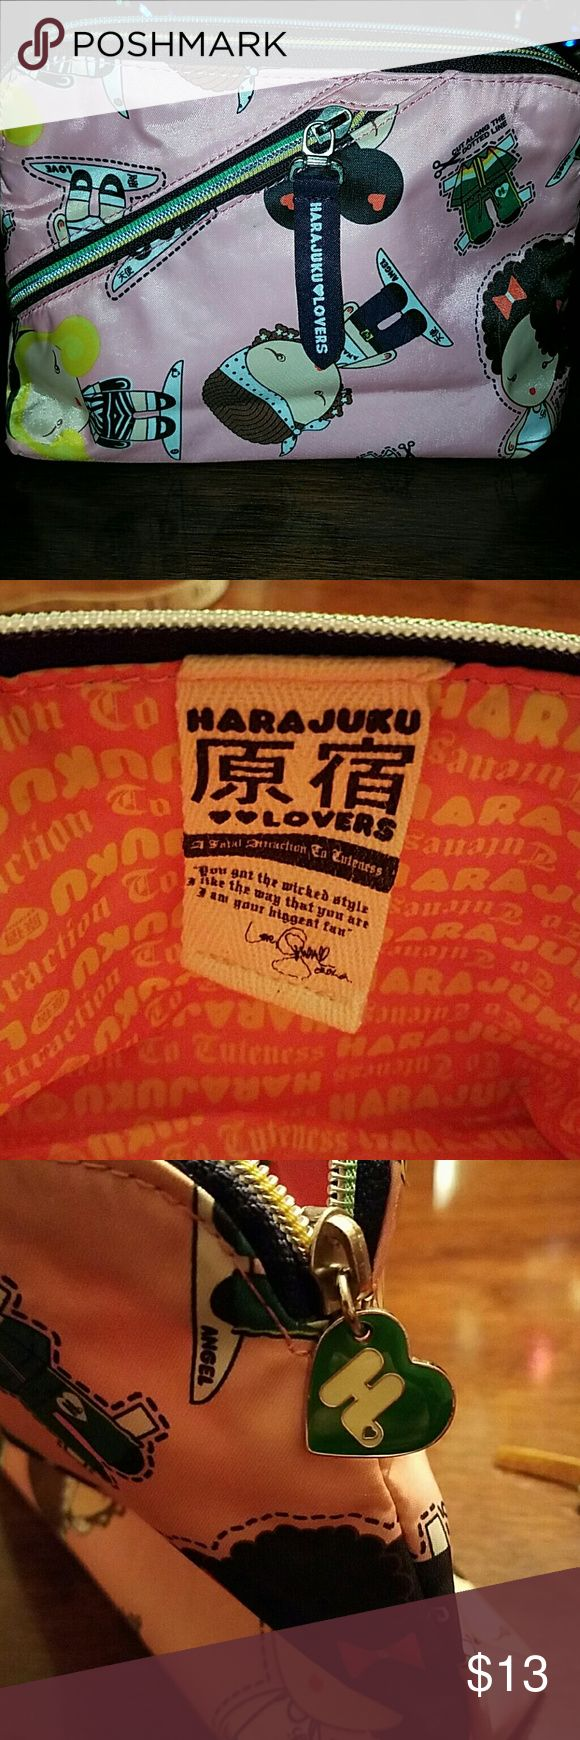 Hara juku lovers bag Polyester,  punk, satin feel.  Cute for all ages.  Make up or accessories bag.  Fun,  two tone zipper pocket on top and outside.  Measures as shown.  Machine washable.  No signs of wear,  inside or out. Harajuku Lovers Bags Cosmetic Bags & Cases